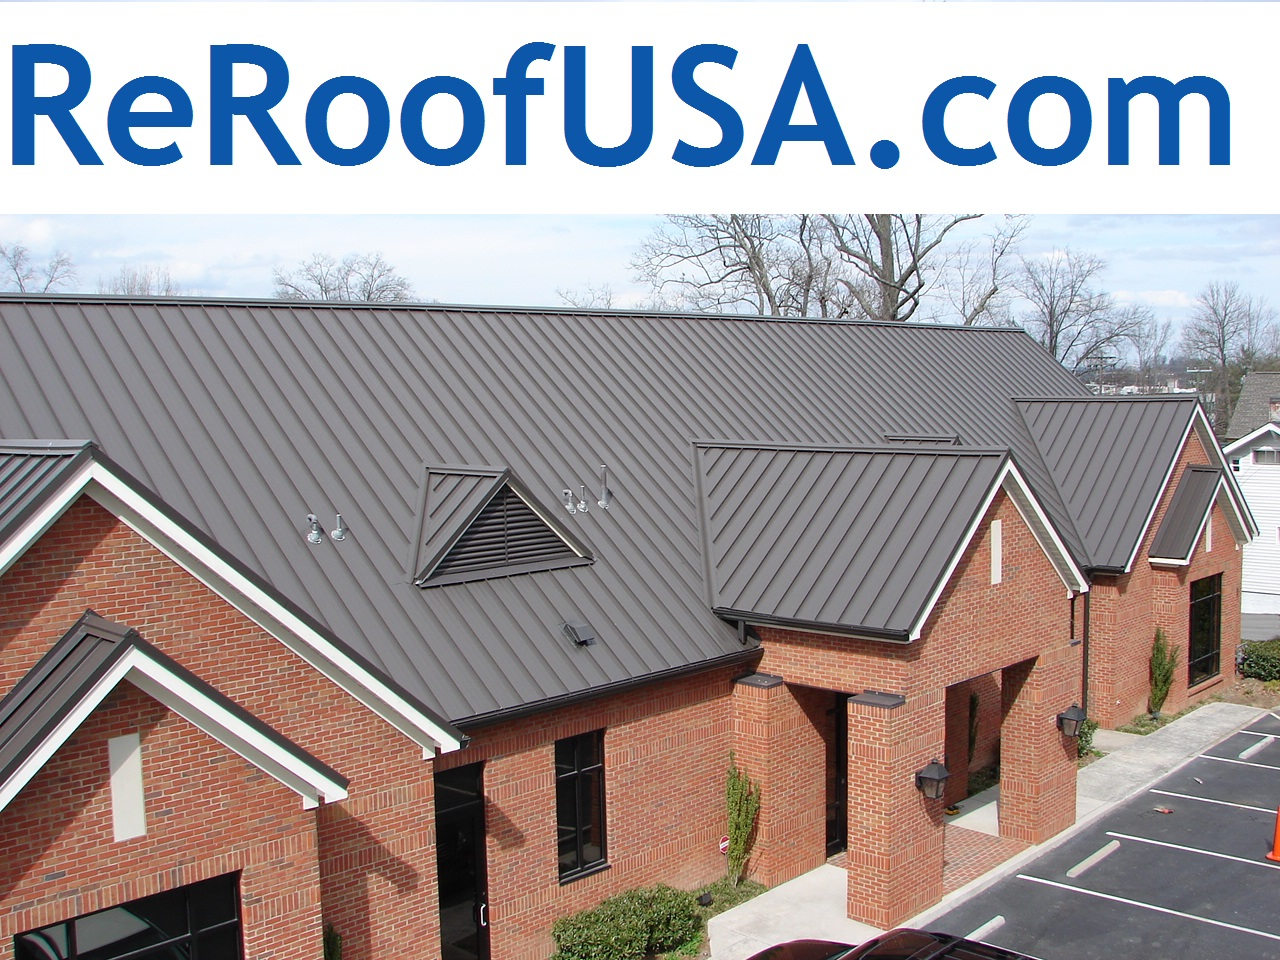 Beautiful Metal Roofing Company In Tucker Georgia Completes Installation And  Contractor Services At American Self Storage By ReRoof USA